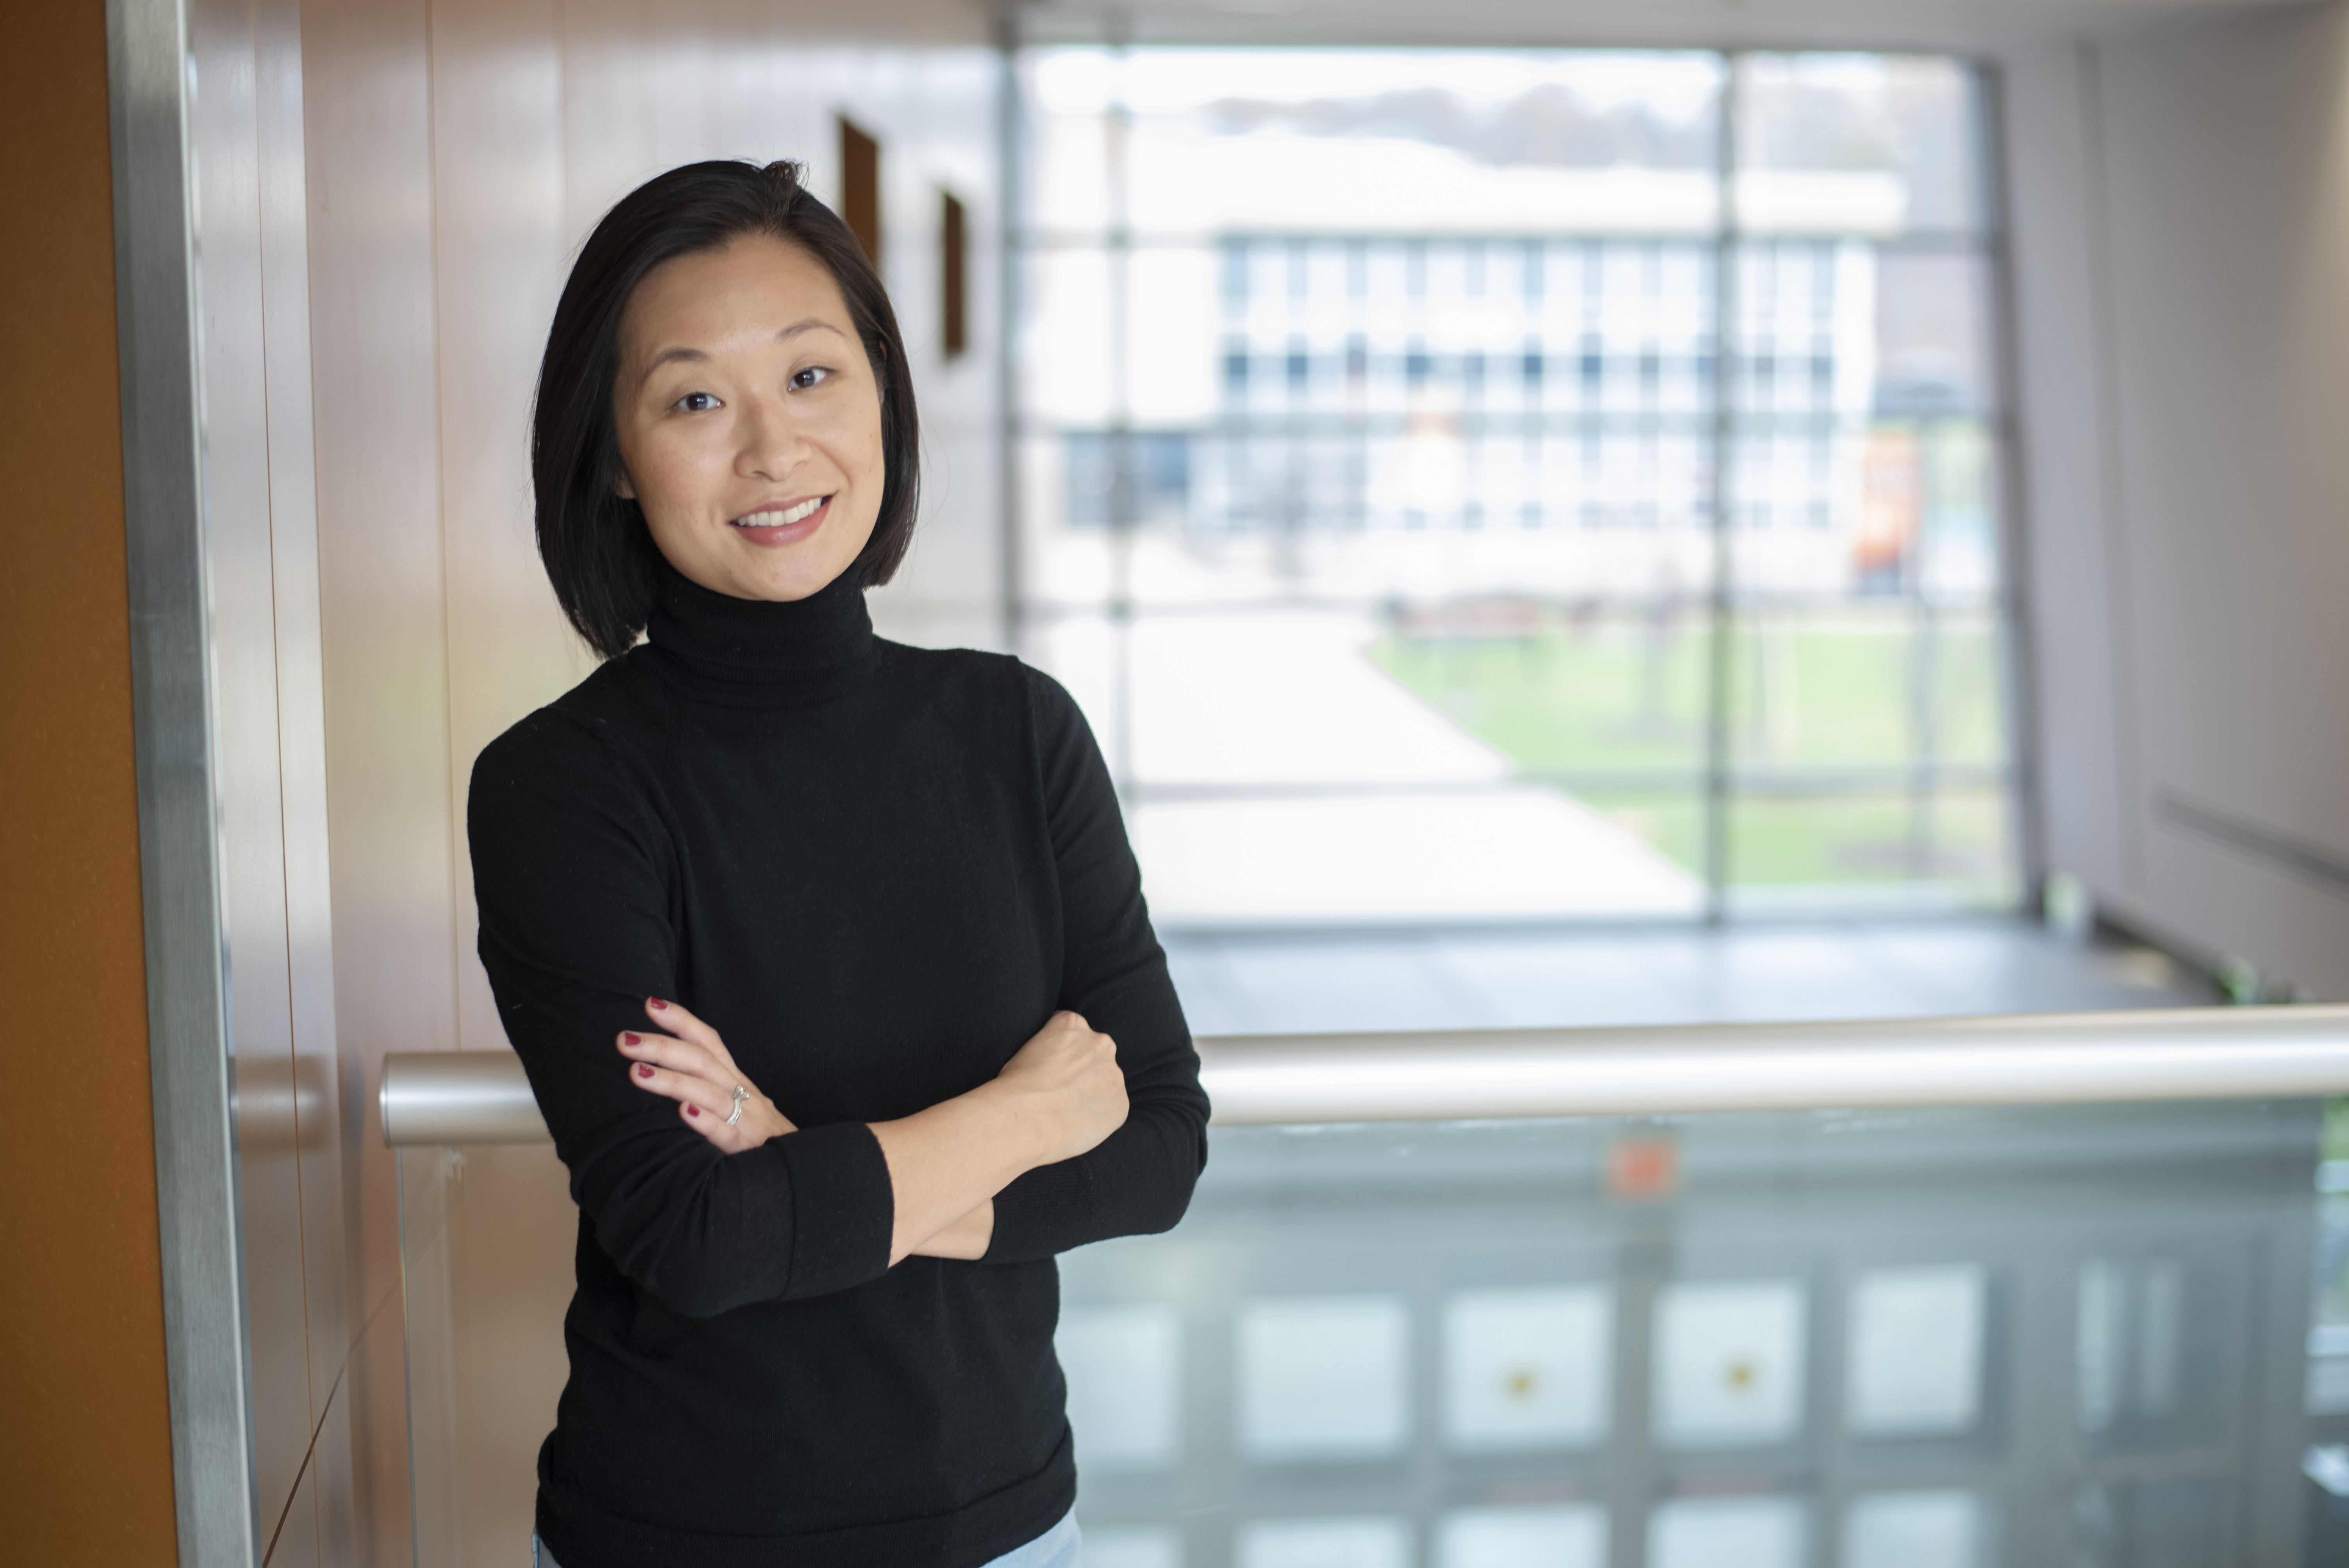 Dr. Janet Ahn is Chief Behavioral Science Officer at Mind Gym, a behavior change company that has helped business leaders transform their organizations for over 20 years.